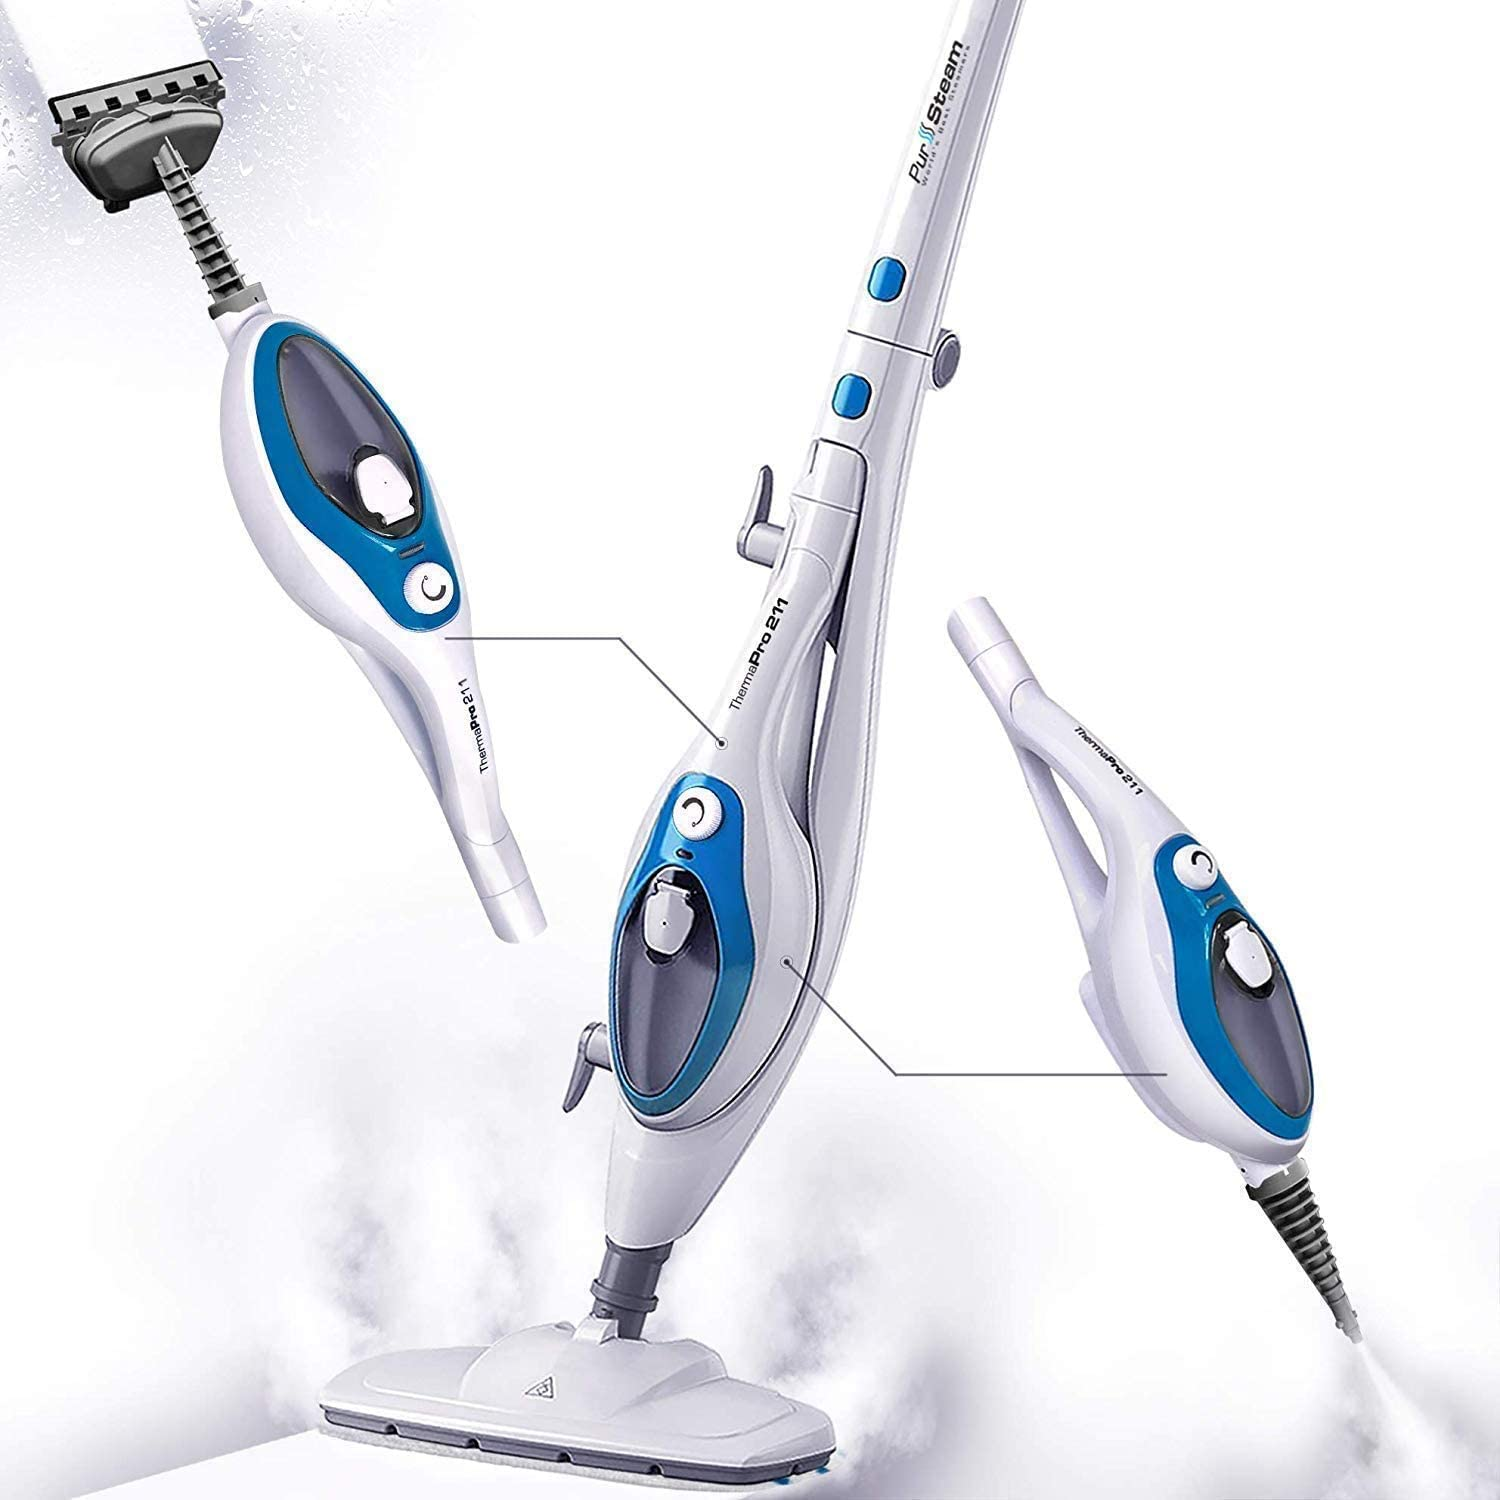 Review of Steam Mop Cleaner ThermaPro 10-in-1 with Convenient Detachable Handheld Unit by PurSteam